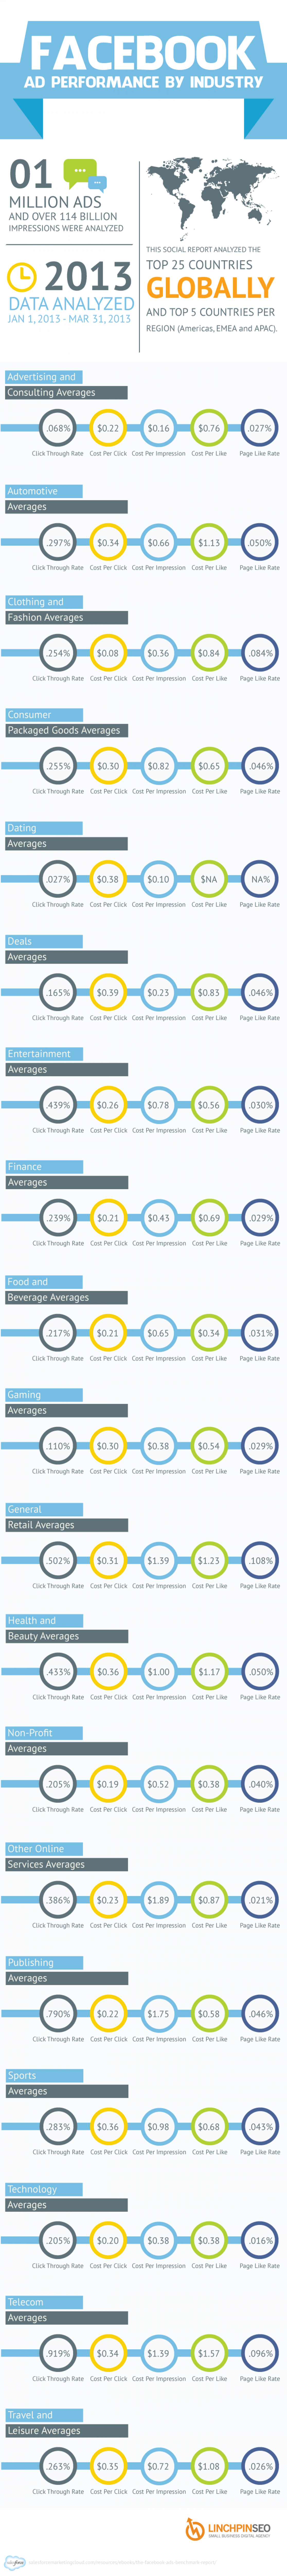 Facebook Ads - Are They Worth It? Infographic